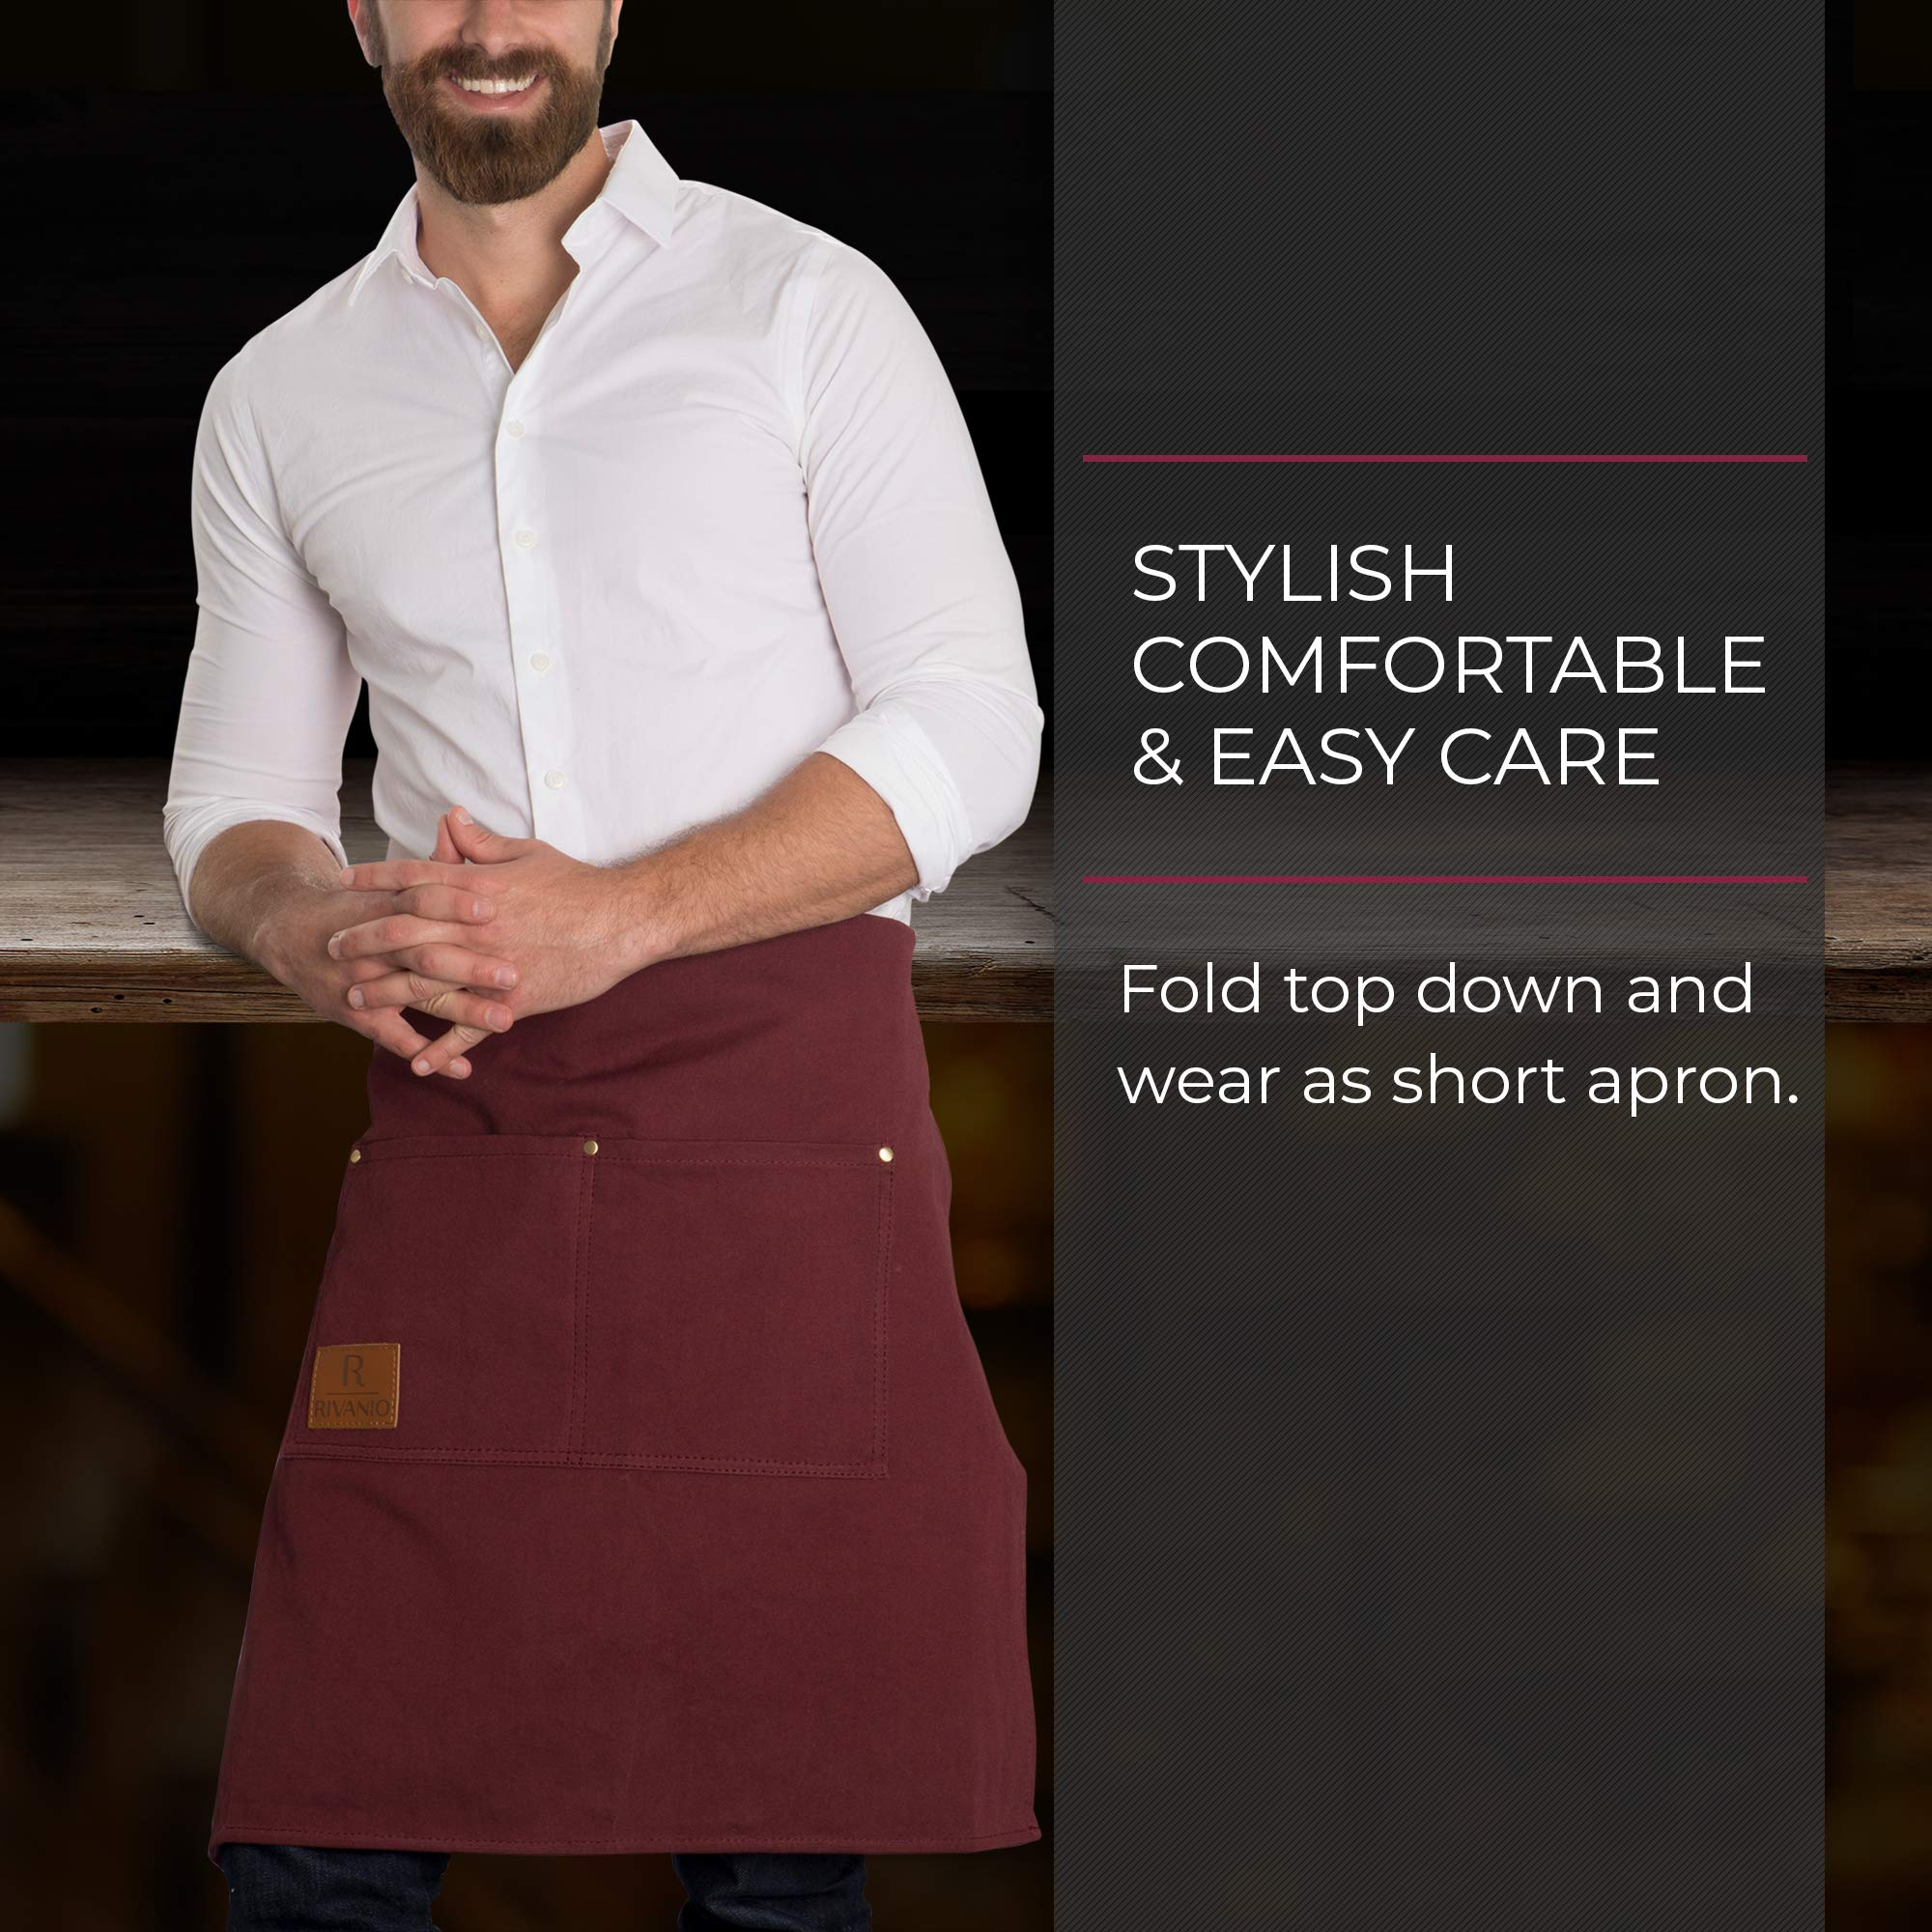 Rivanio Canvas Cooking Apron, Long with Large Pockets - Kitchen, Shop, Grilling, Workshop Aprons for Men and Women - Adjustable Neck and Waist Straps - Stylish, Professional, Lightweight Bibs by Rivanio (Image #7)